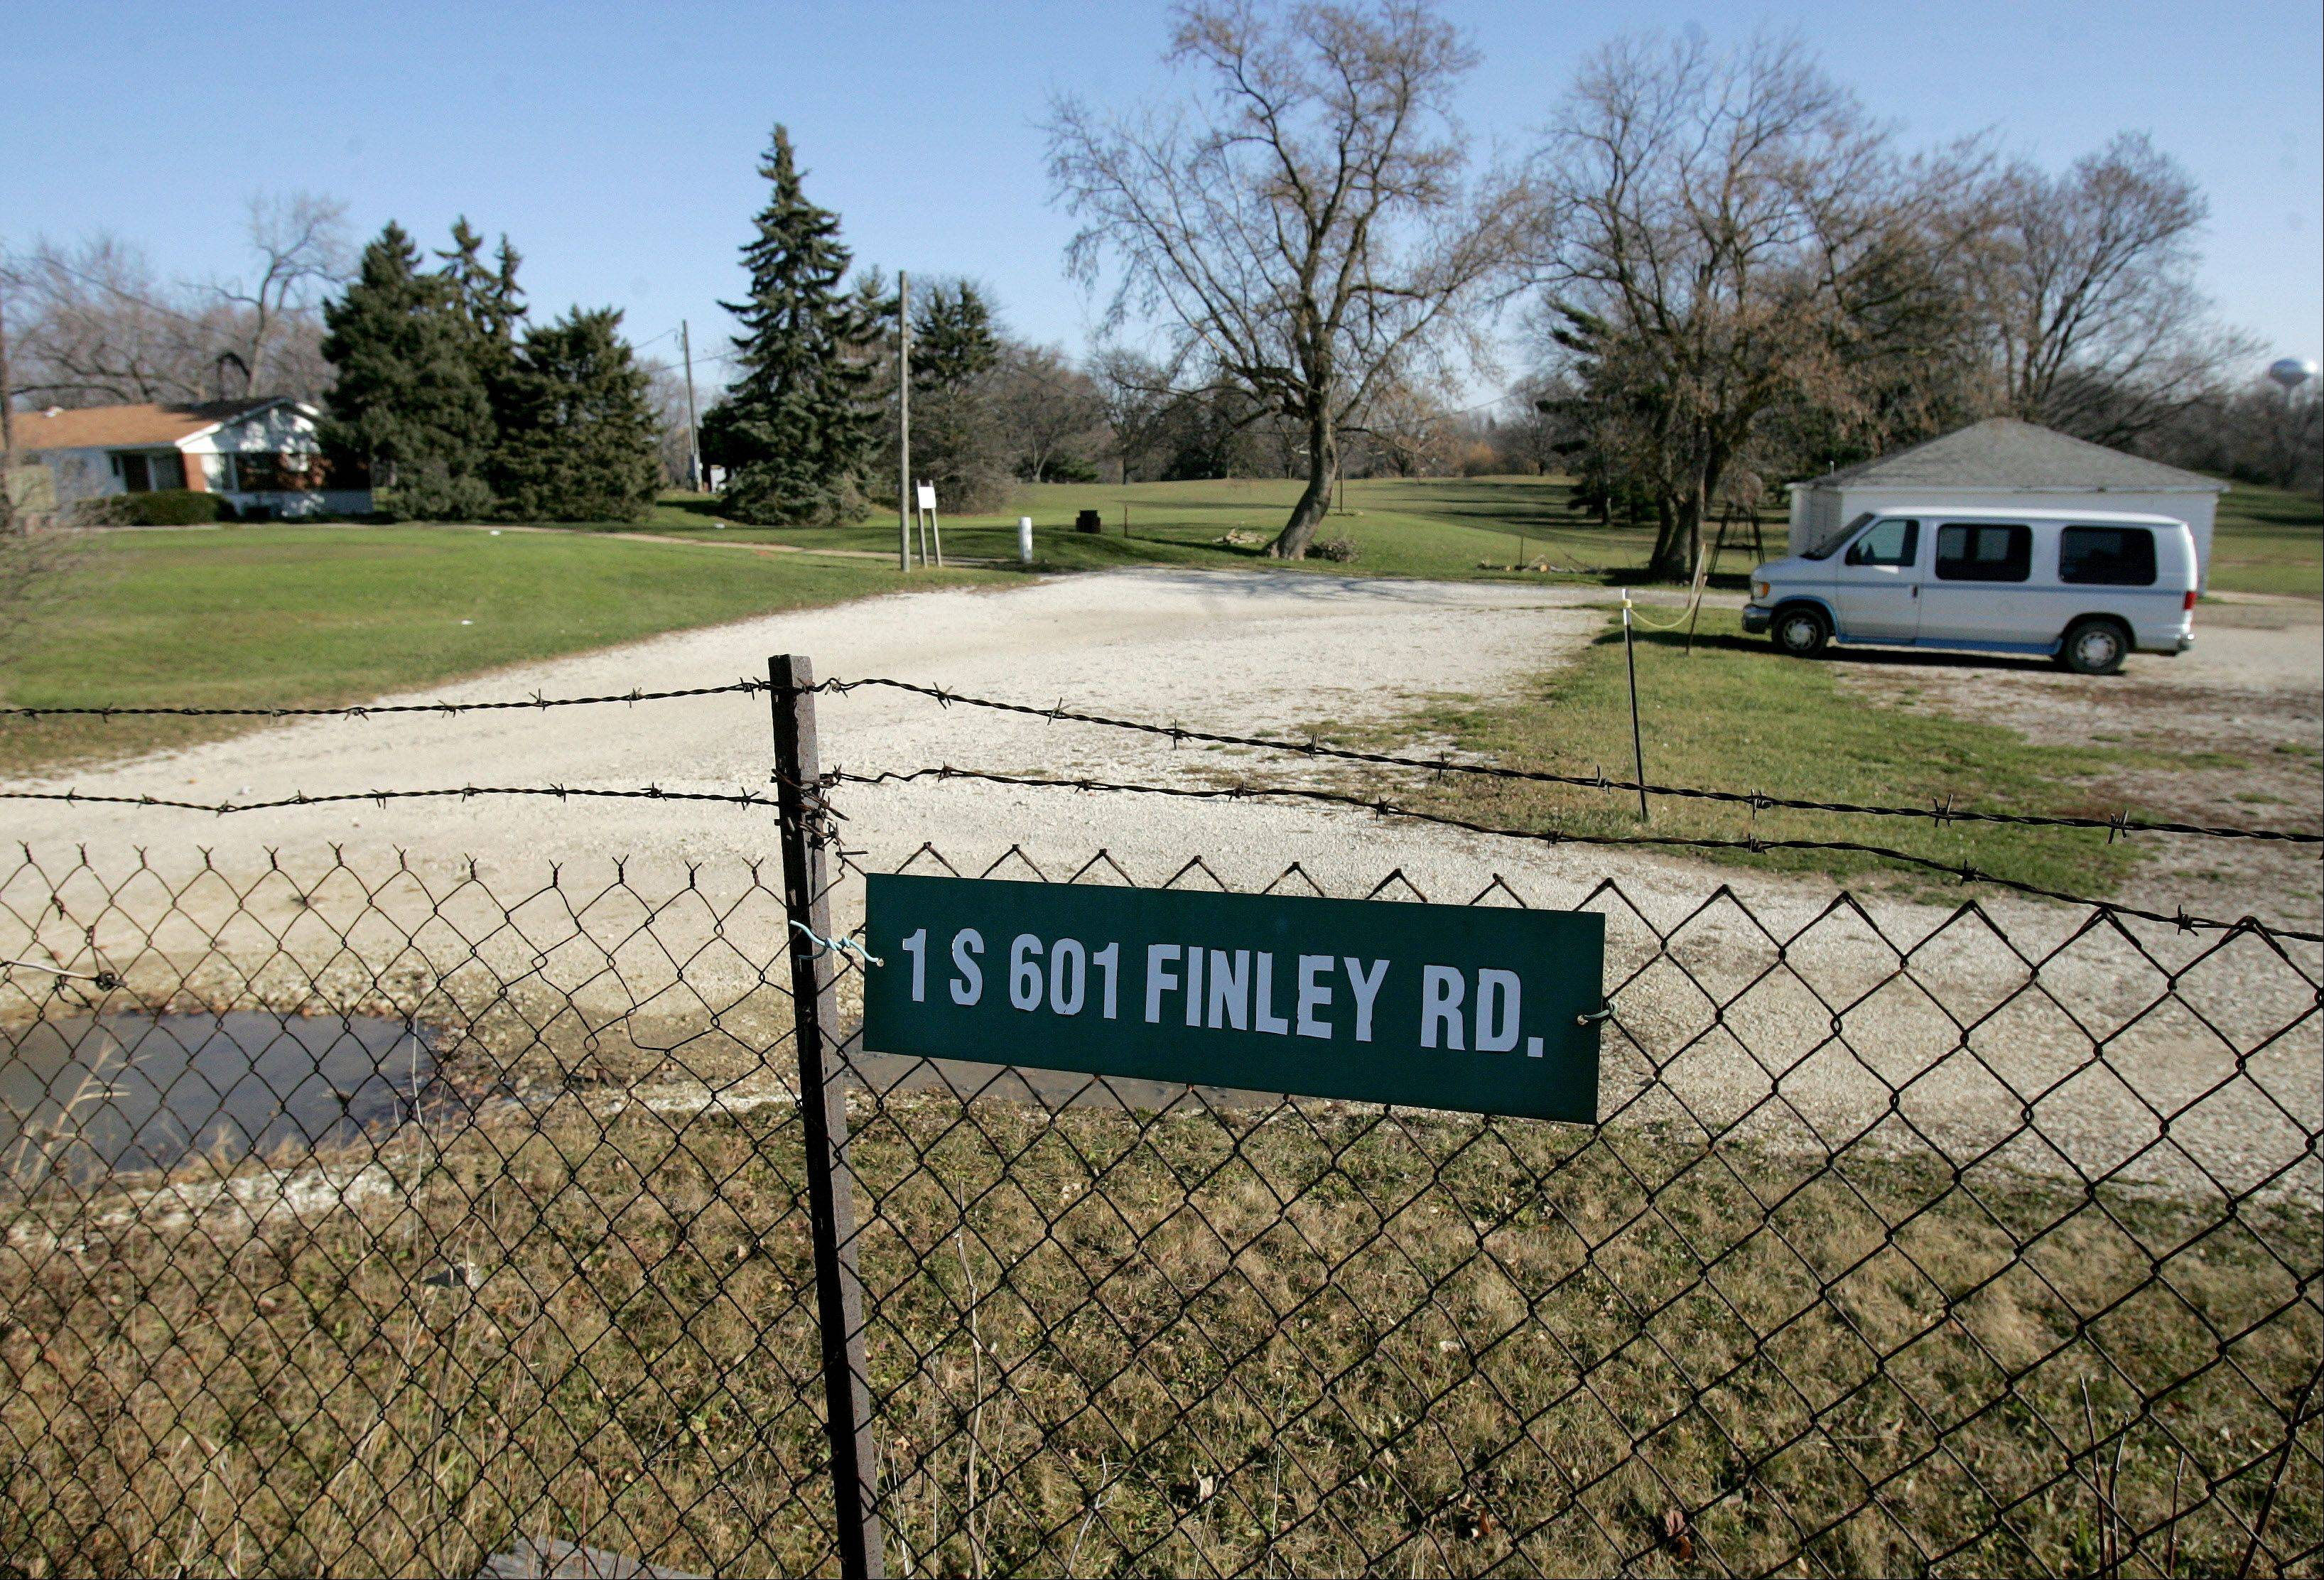 The Ken-Loch Golf Links in an unincorporated area near Lombard is for sale, and a developer looking to buy it wants to build apartments and townhouses. The plan commission recommends changing the village's comprehensive plan to allow up to 25 percent of the site to be developed to complement an open space use.